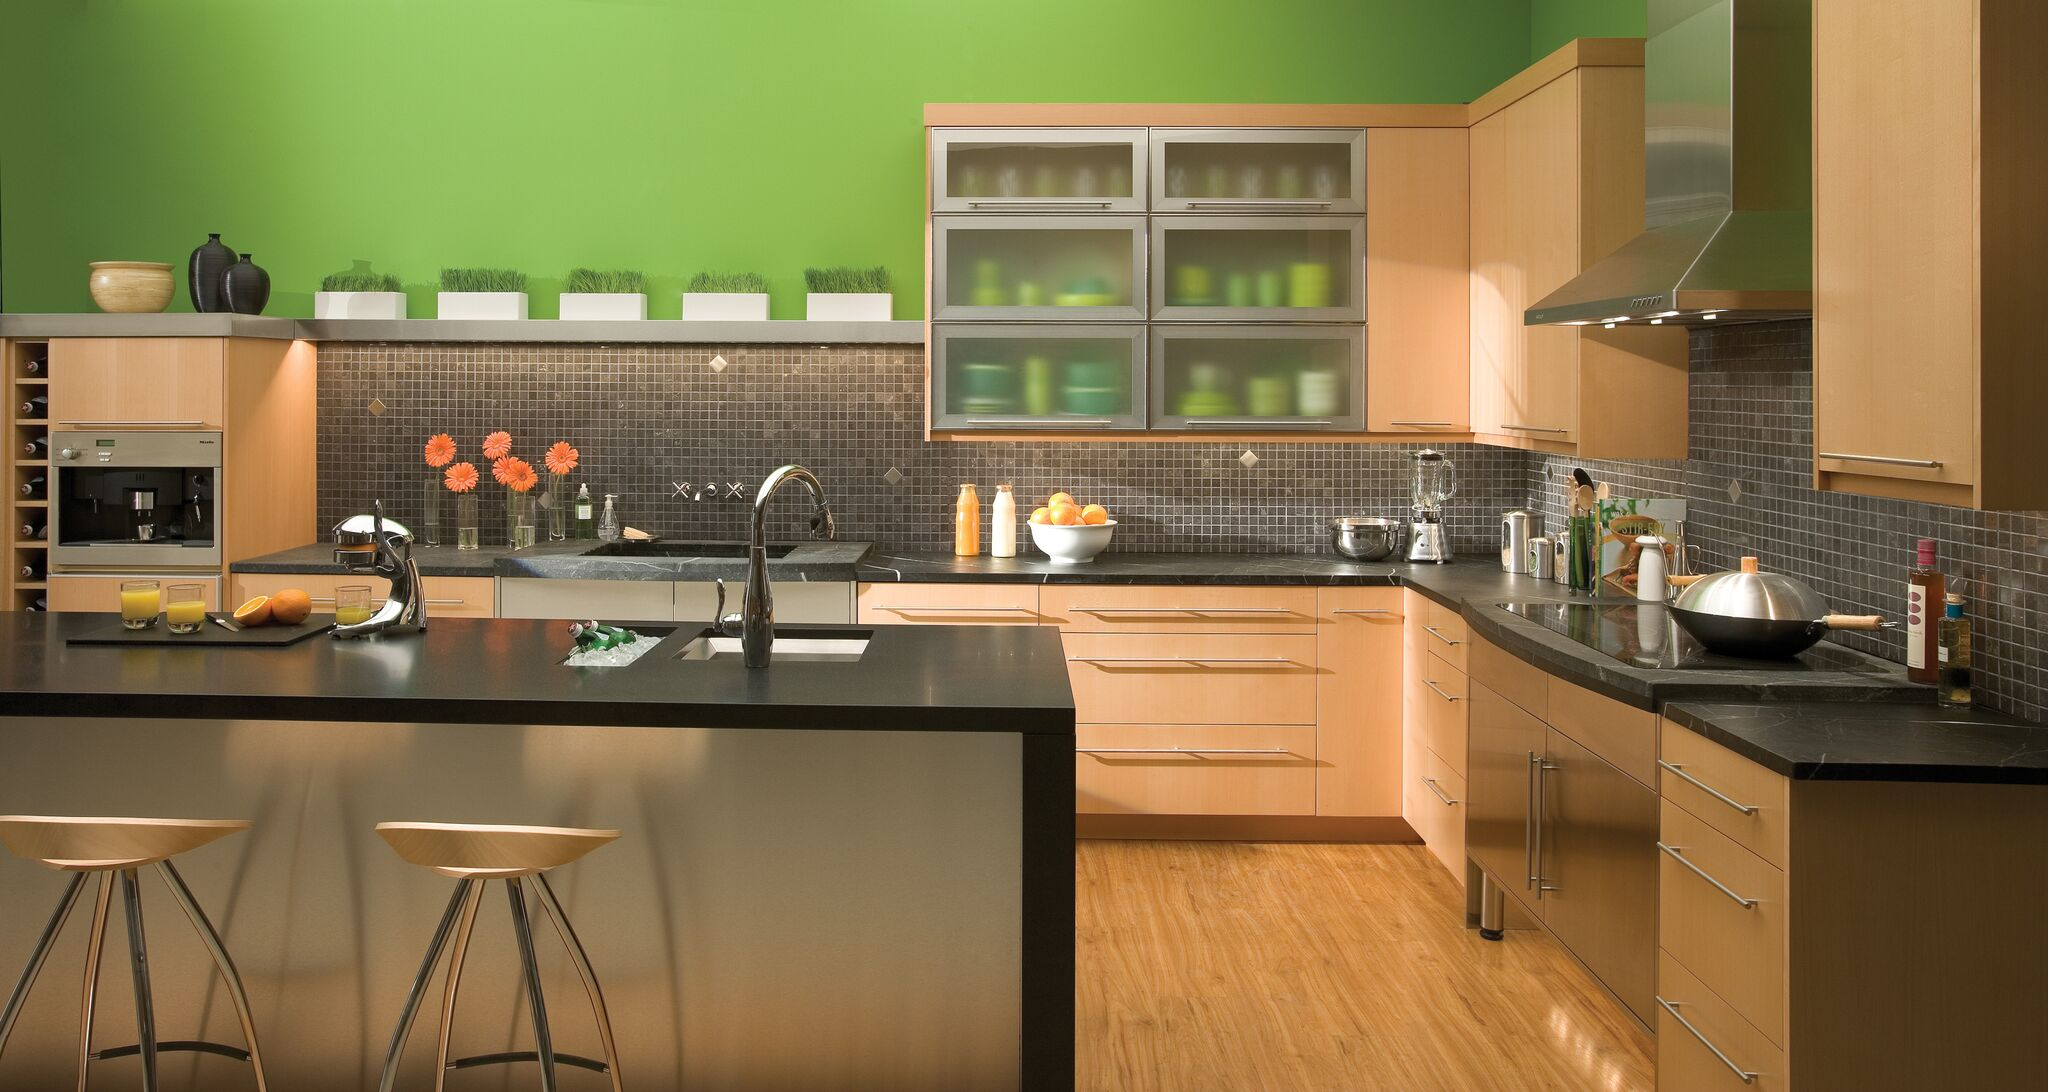 Gallery | Kitchen Remodel | Bathroom Remodel | Boise Idaho